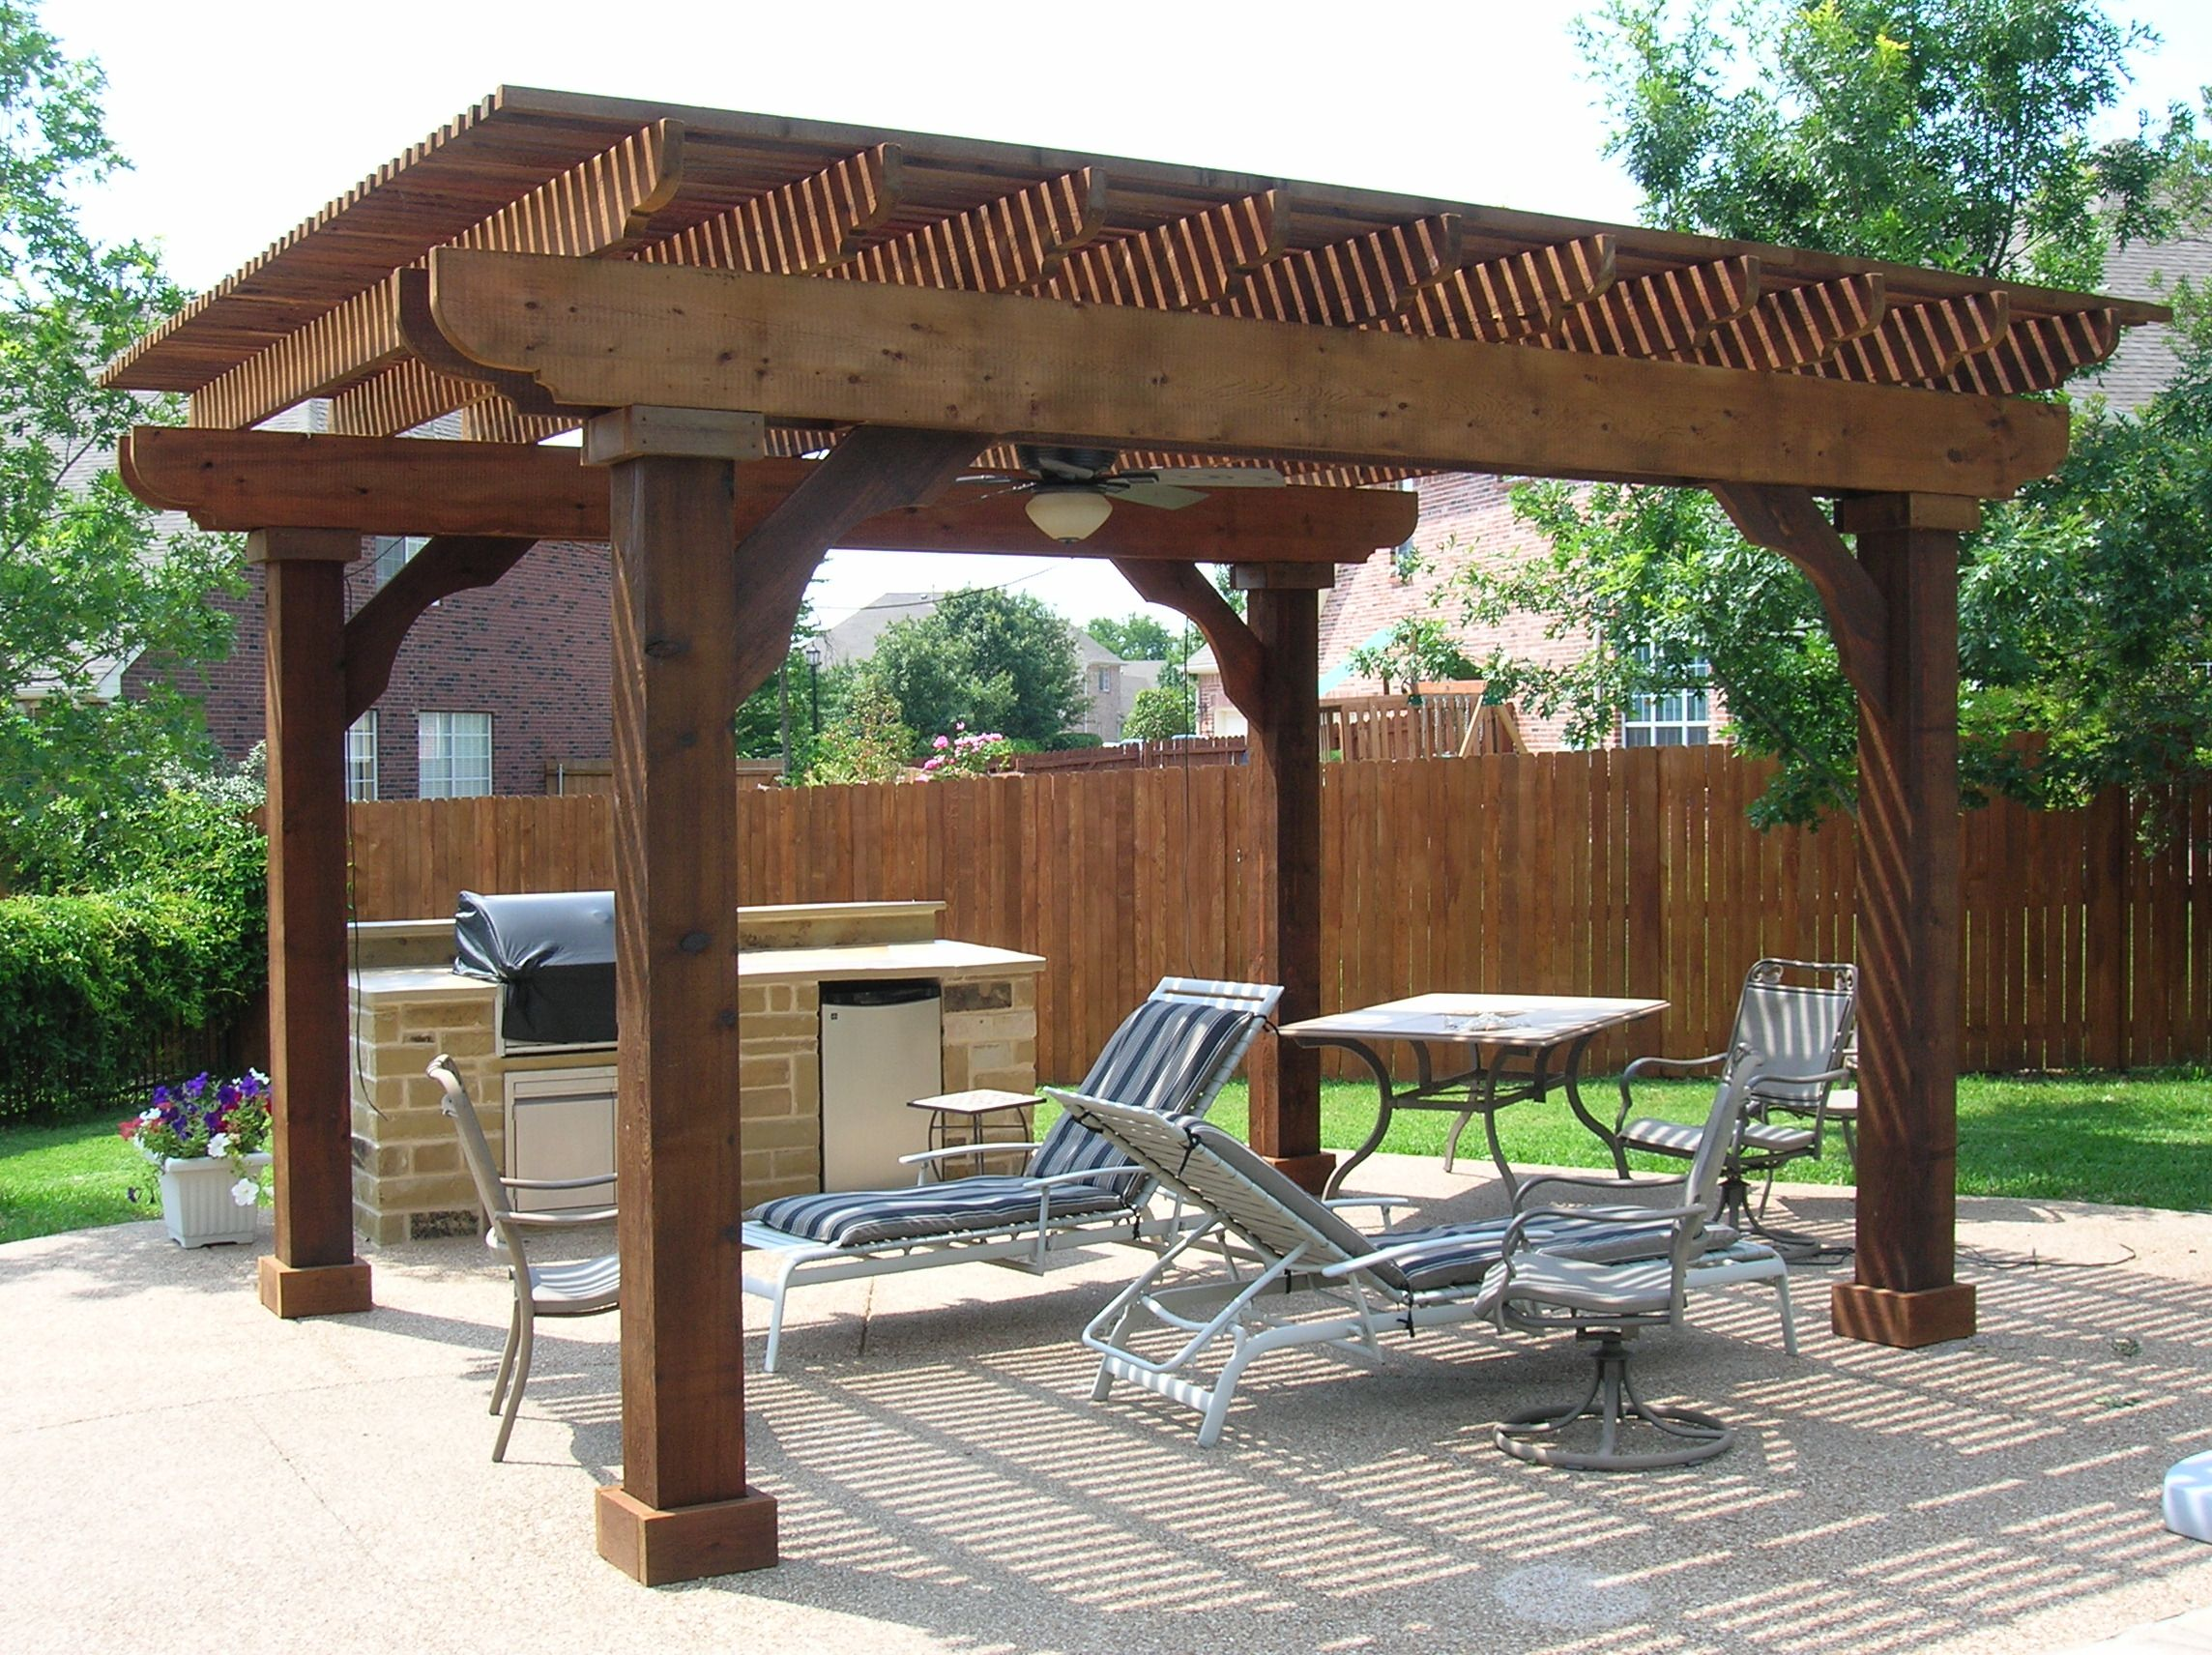 Free Standing Patio Roof Designs | Free Standing Cedar Arbor With Ceiling  Fan   Keller,